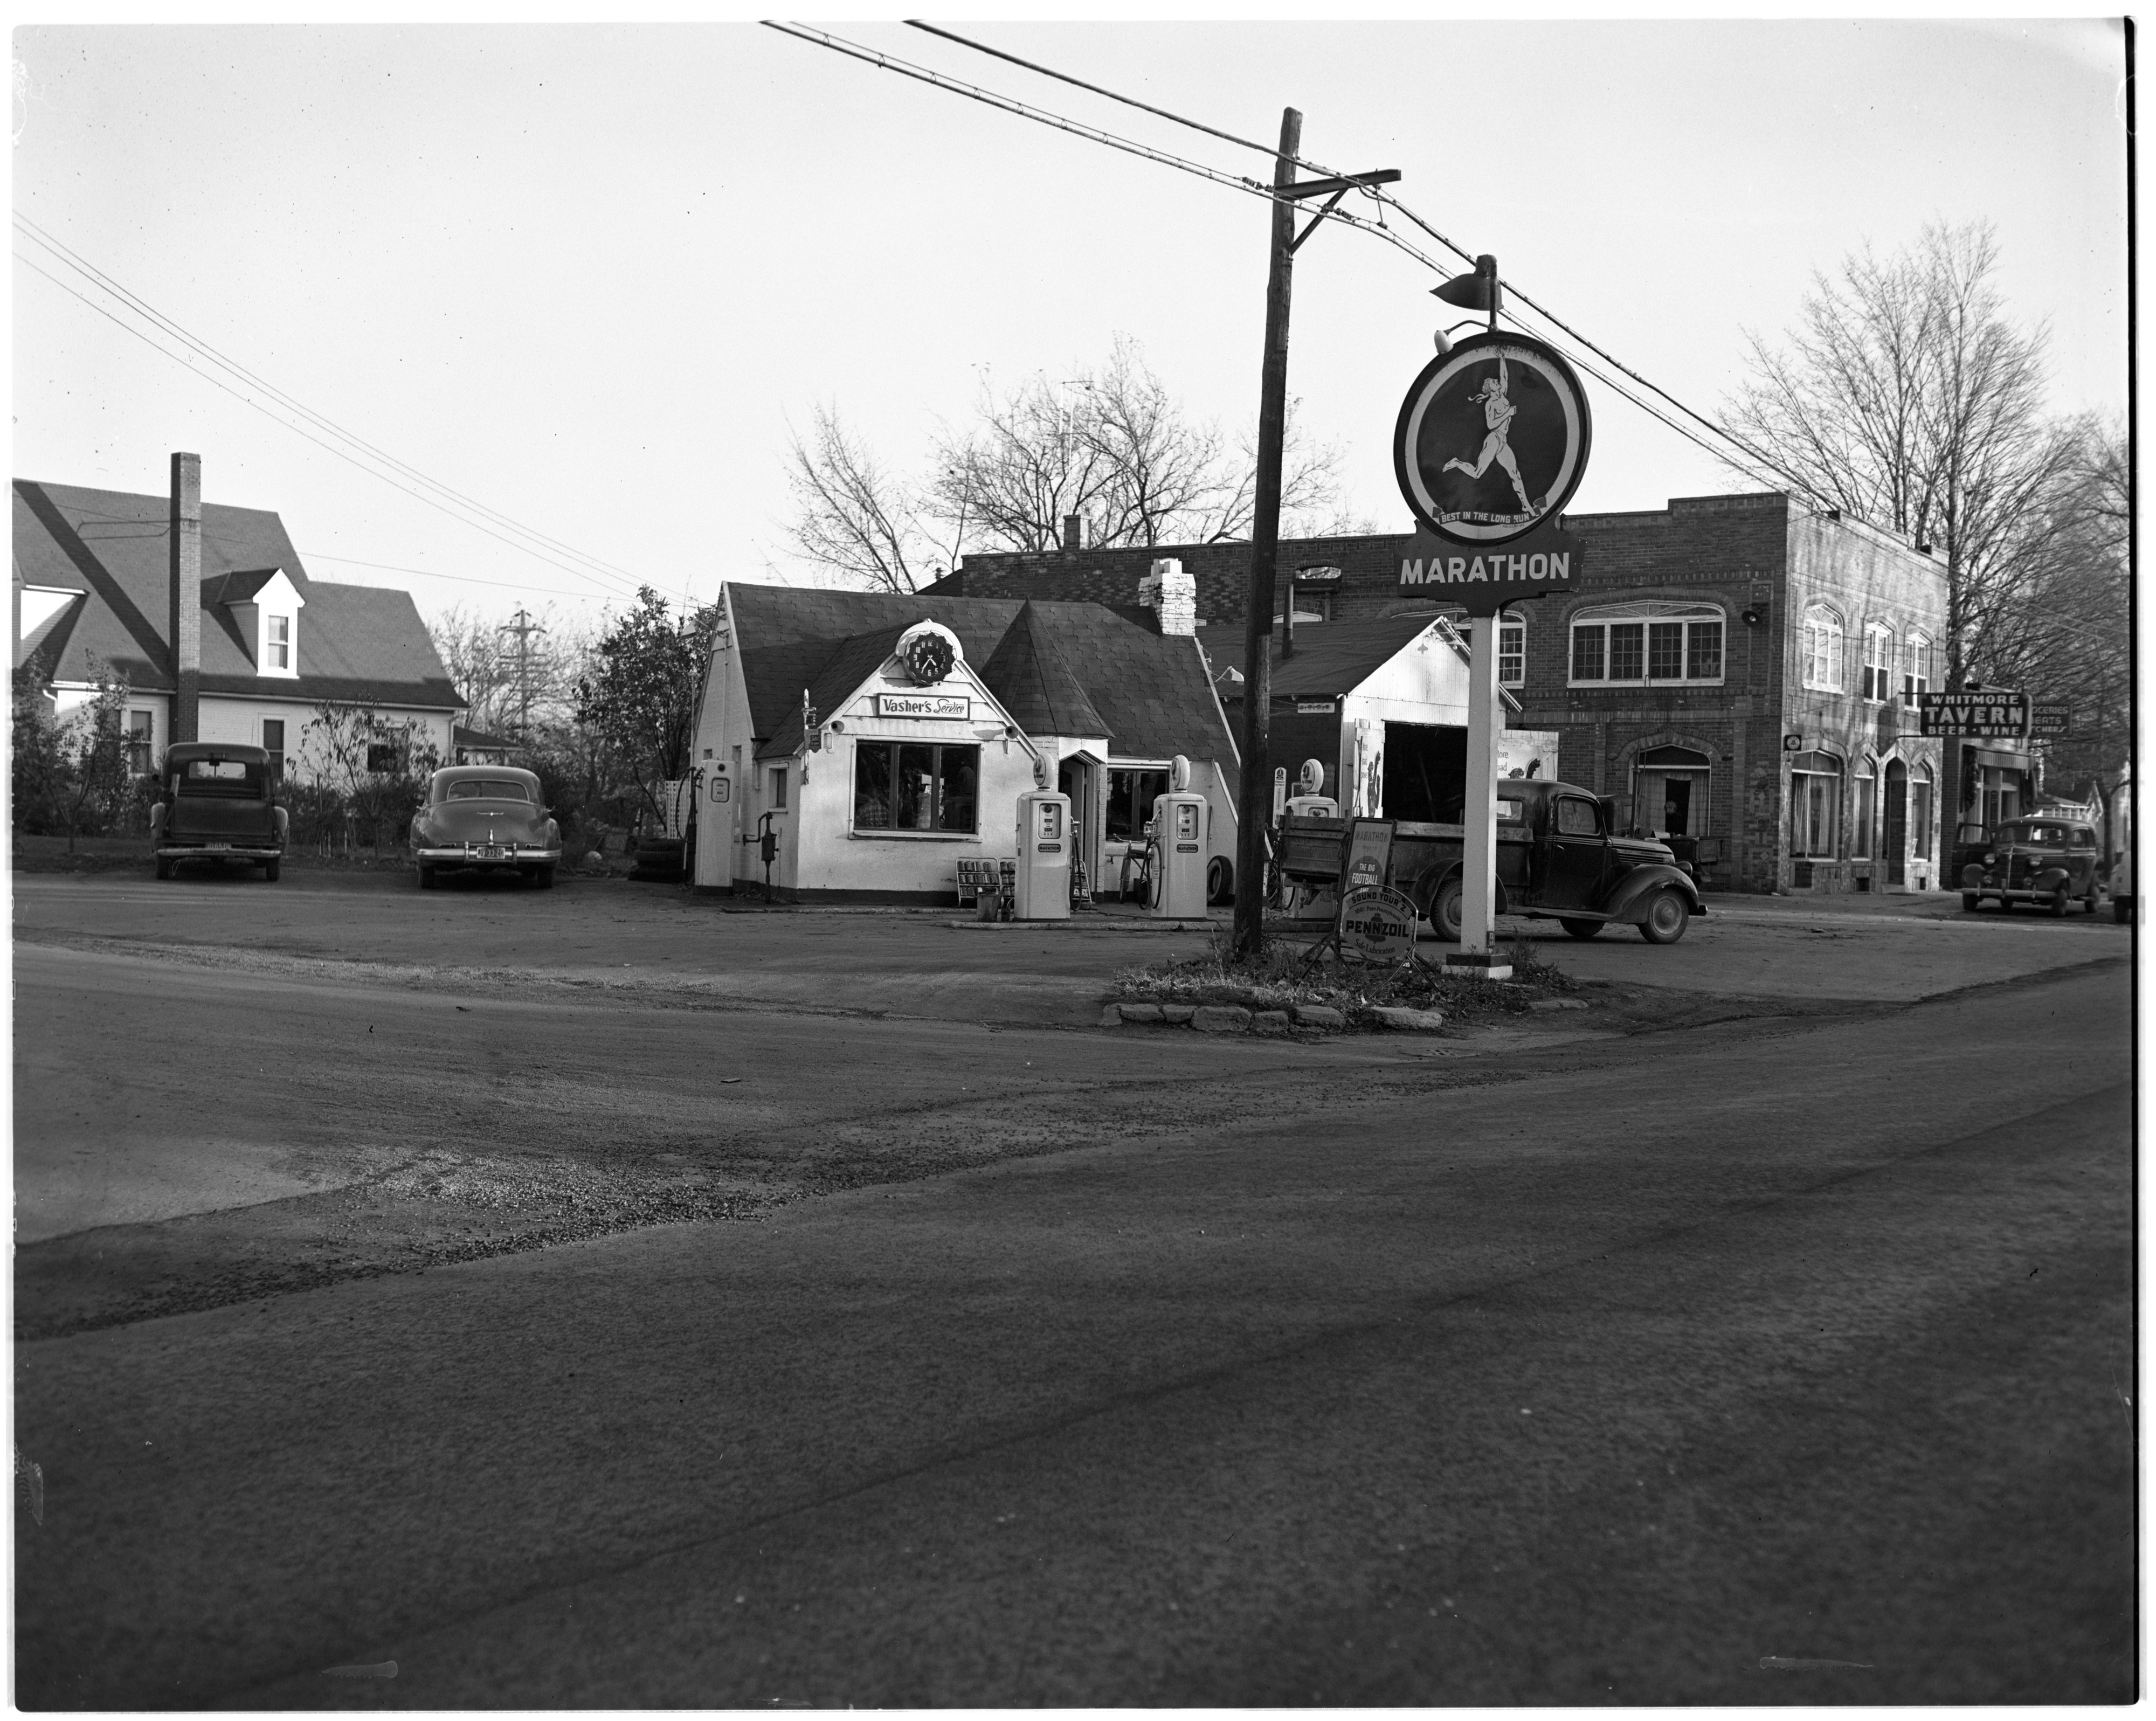 Vasher's Service and gas station, November 1951 image